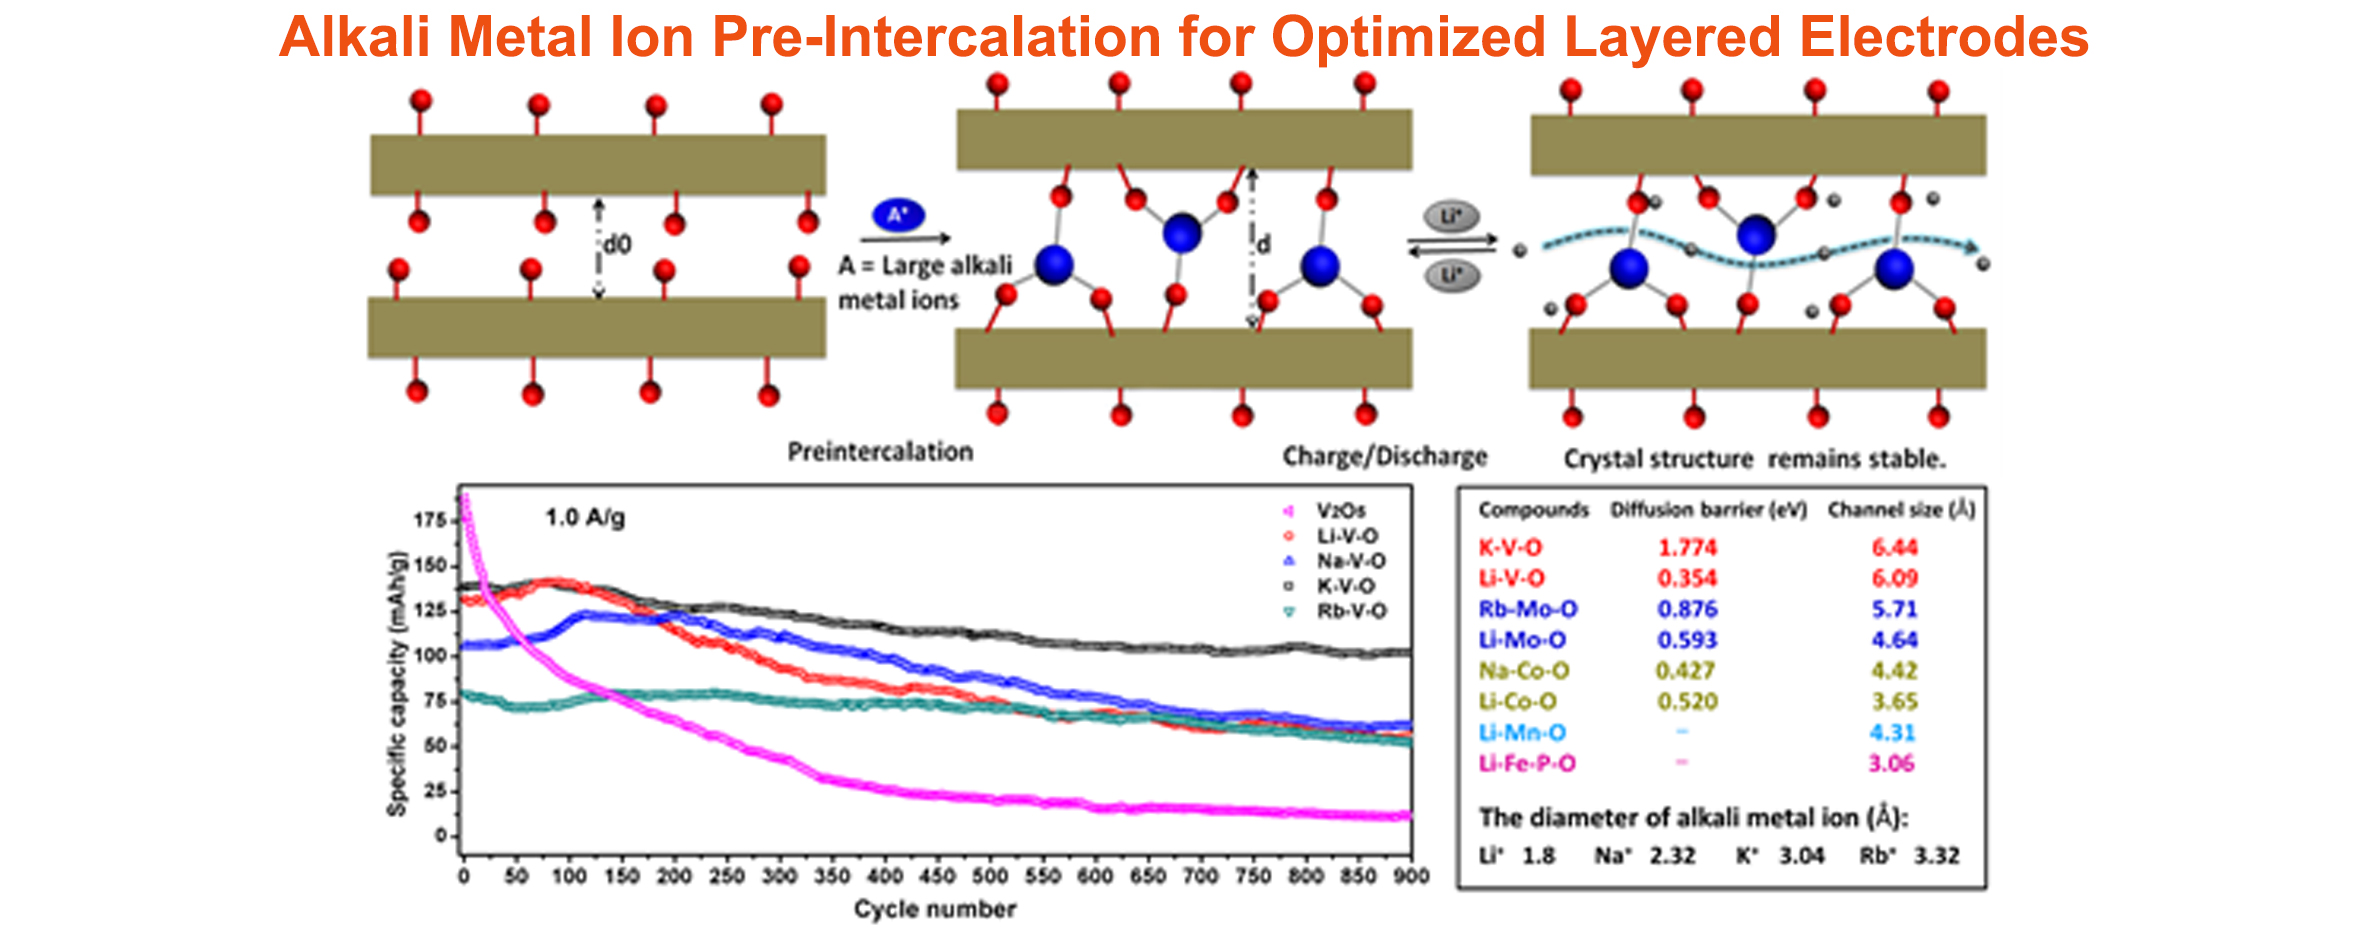 Alkali Metal Ion Pre-Intercalation for optimized layered electrodes